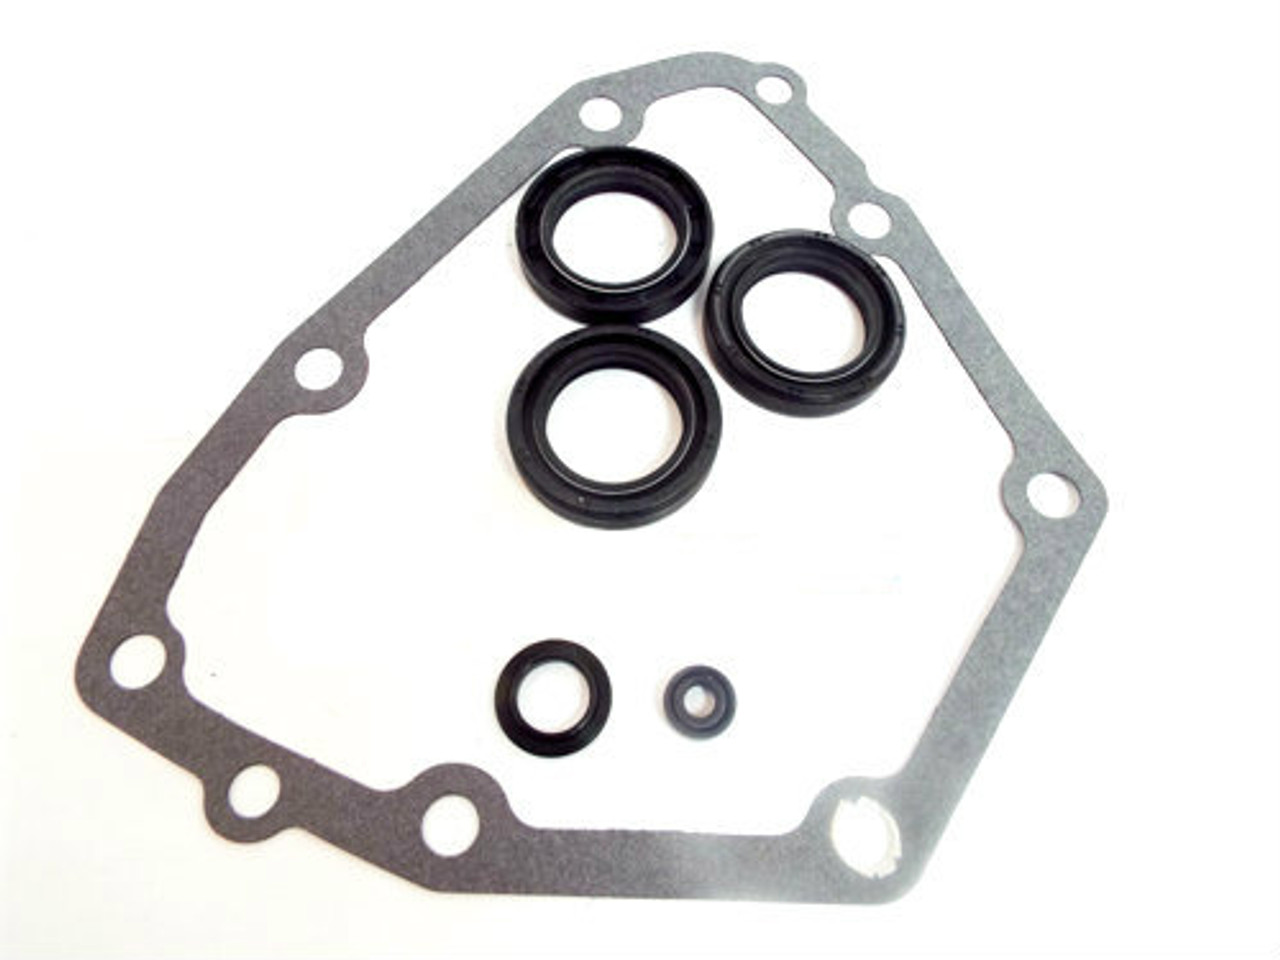 Ford 5R110W Transmission Sealing Ring Kit 2003 and Up